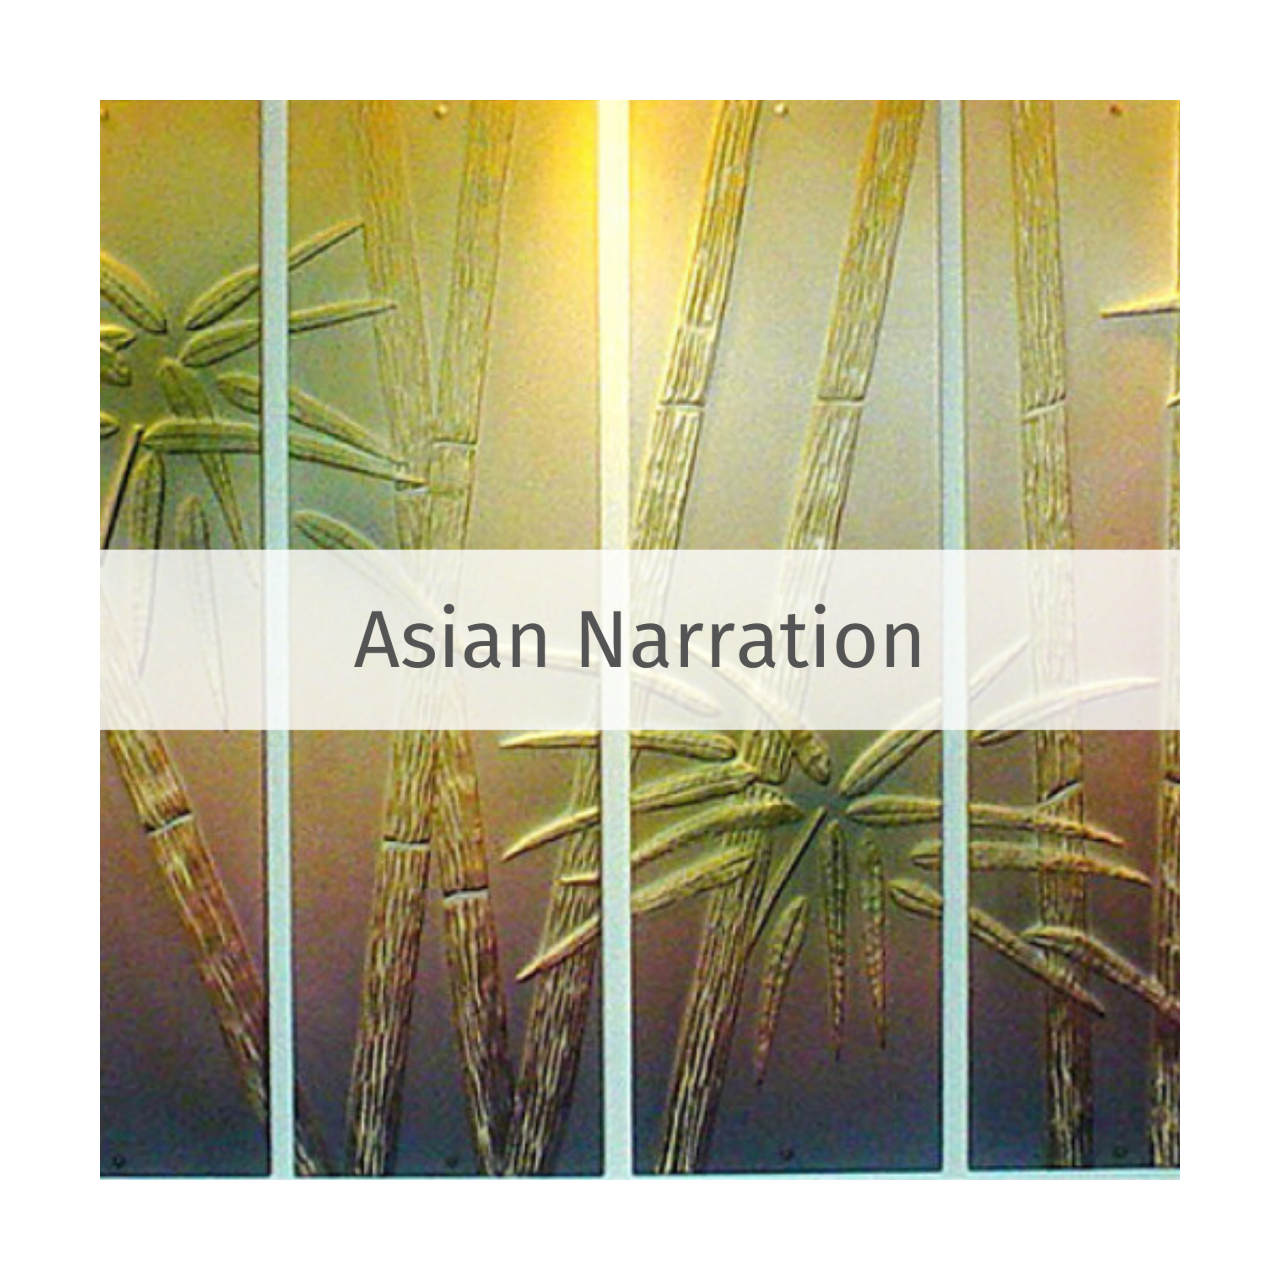 AsianNarration9.jpg